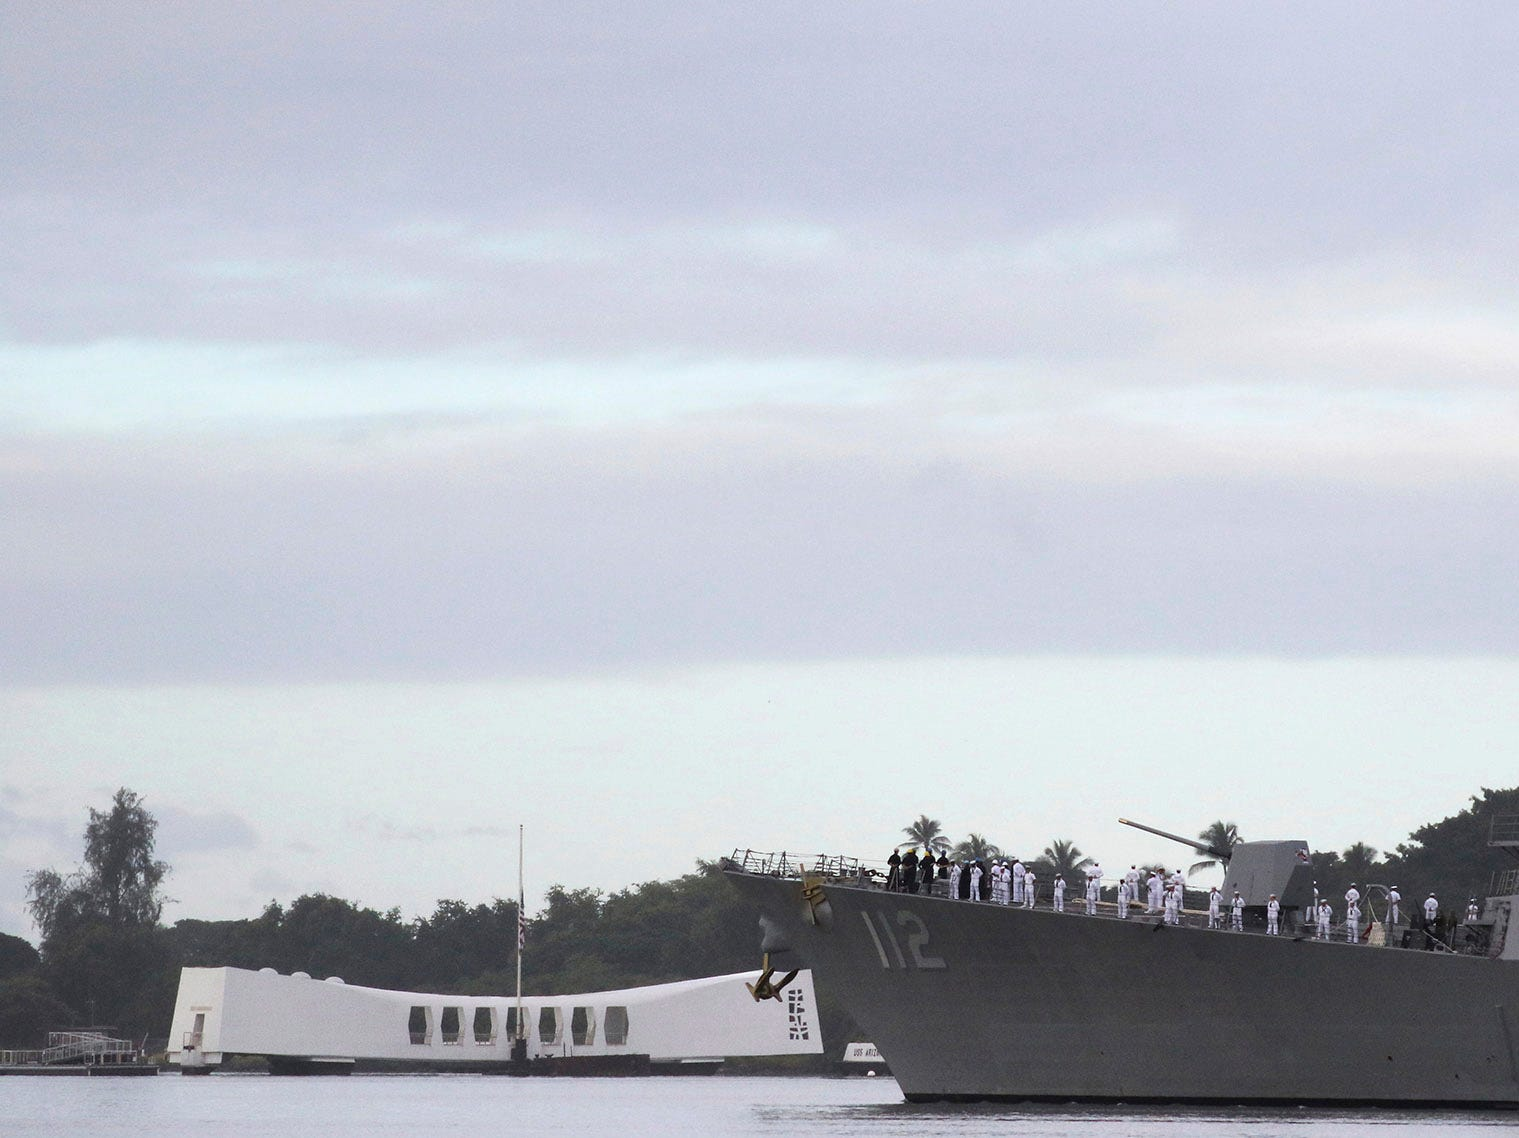 The USS Michael Murphy passes by the USS Arizona Memorial in Pearl Harbor, Hawaii on Friday, Dec. 7, 2018 during a ceremony marking the 77th anniversary of the Japanese attack. The Navy and National Park Service jointly hosted the remembrance ceremony at a grassy site overlooking the water and the USS Arizona Memorial.